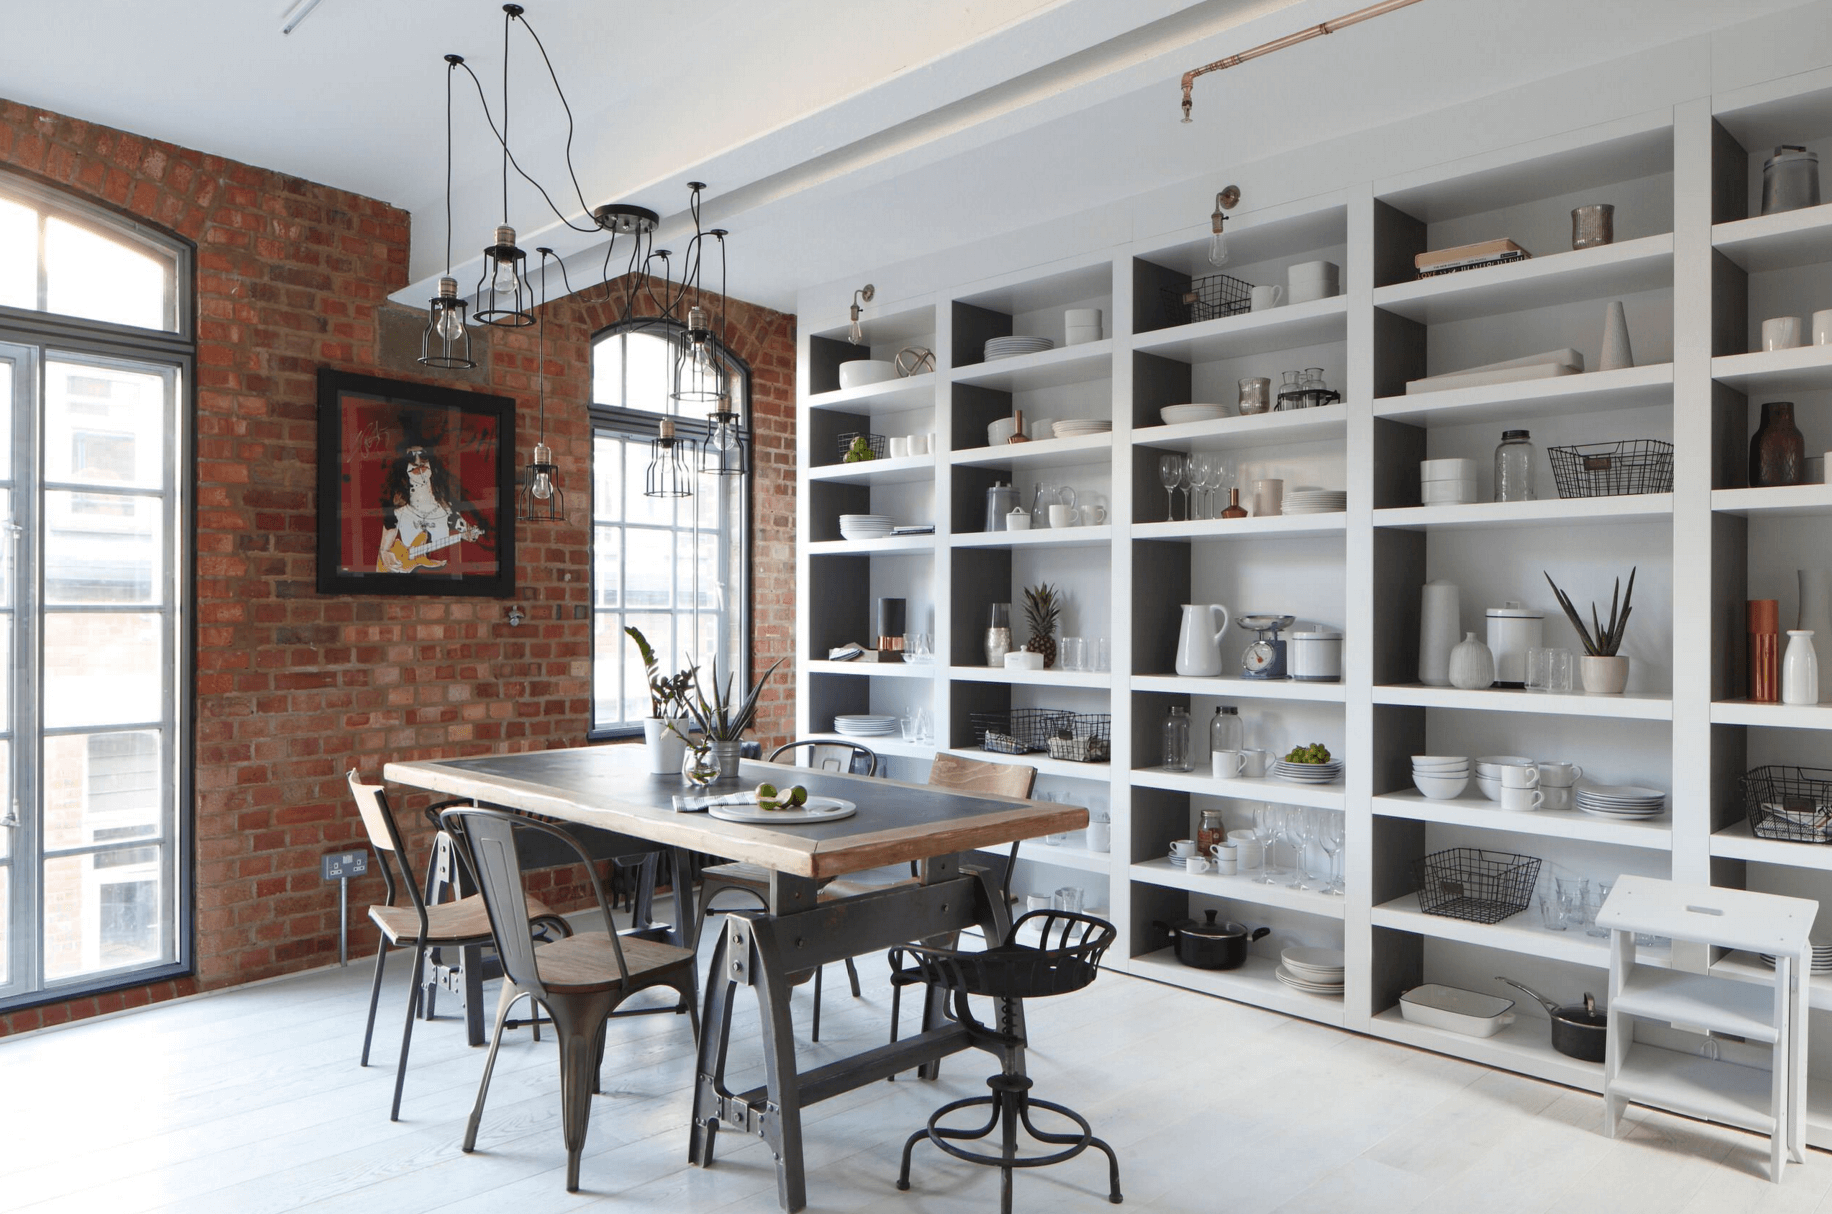 28 Creative Open Shelving Ideas